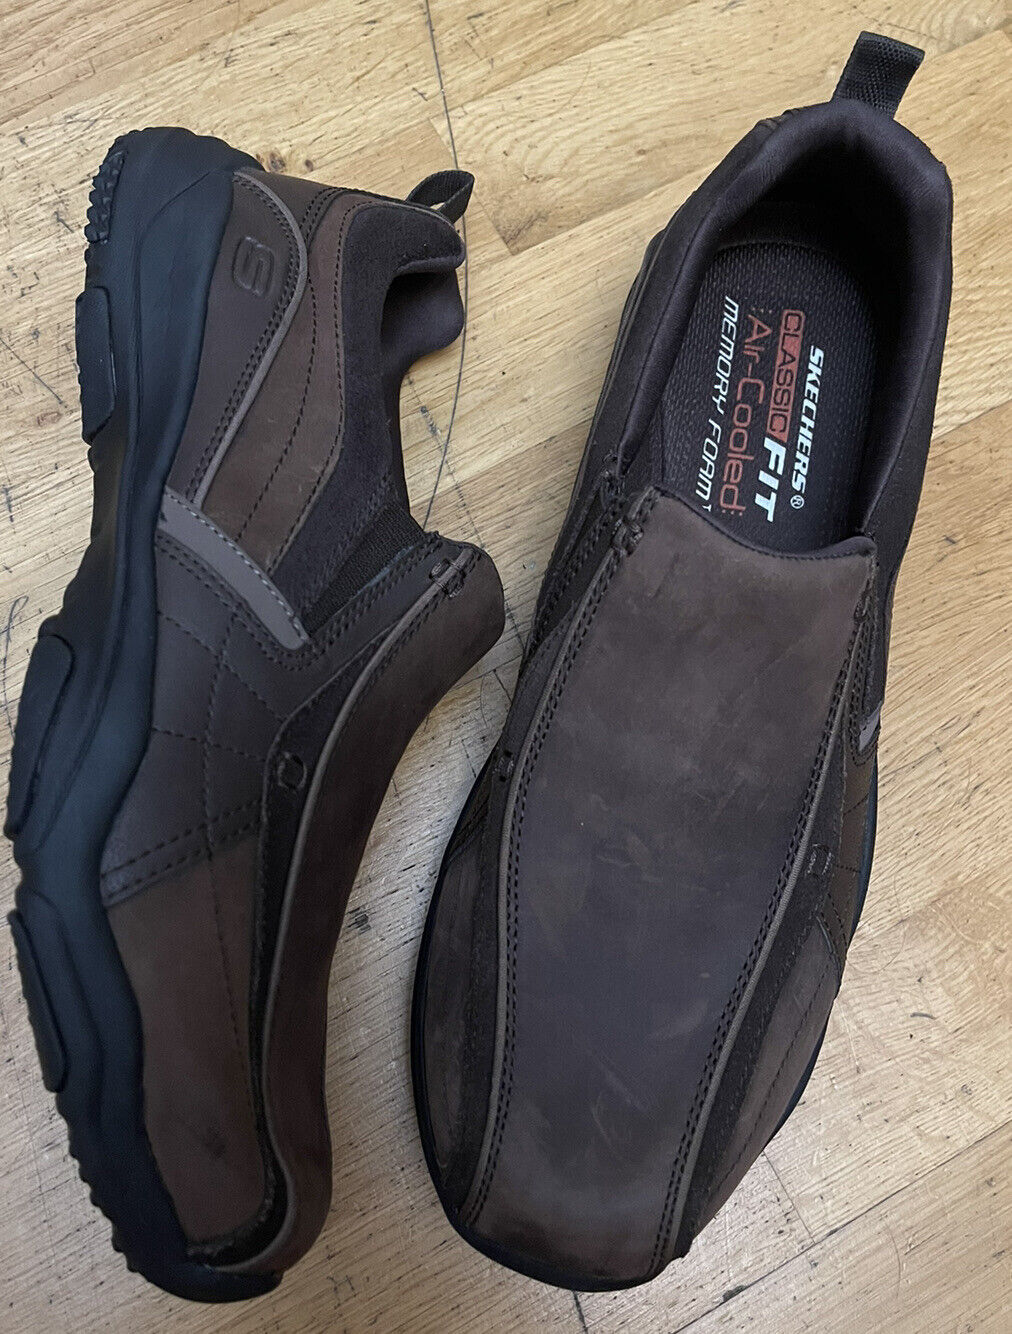 New Skechers ODD SIZE Loafer Slip Leather Trainers Different Feet Shoes L10 R9